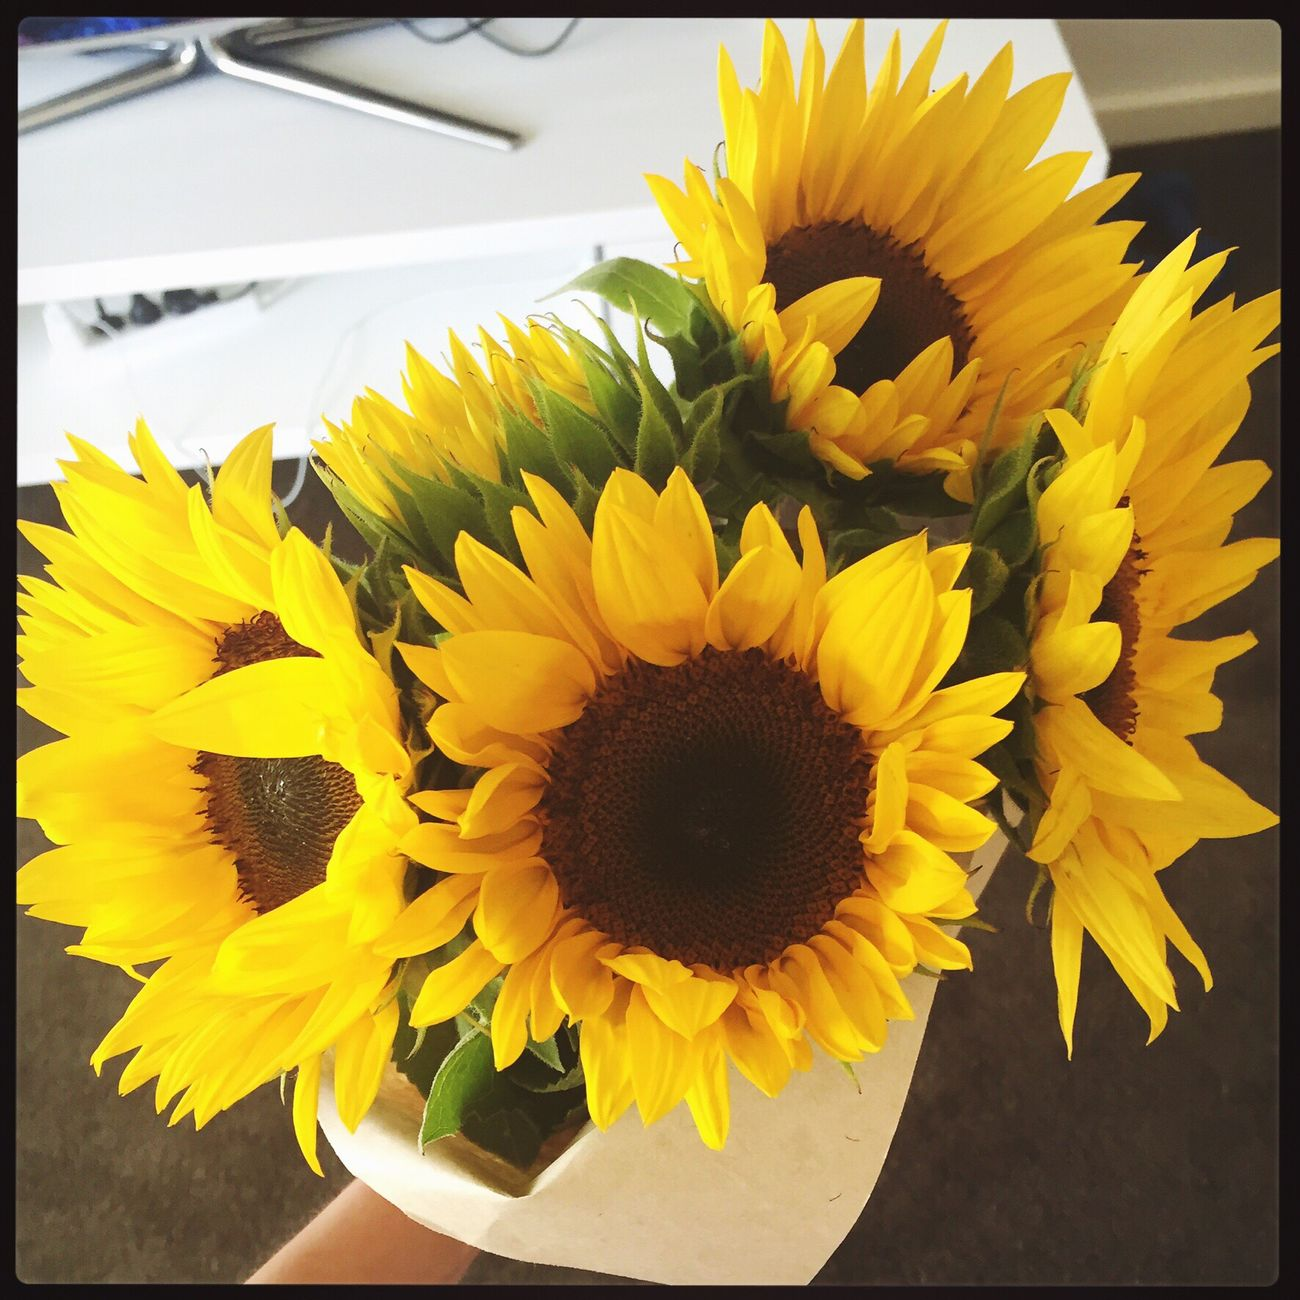 Sunflowers 🌻🌻🌻🌻 Sunflowers🌻 Flowers Birthdaypresent Pretty Simplylovely👌🏻